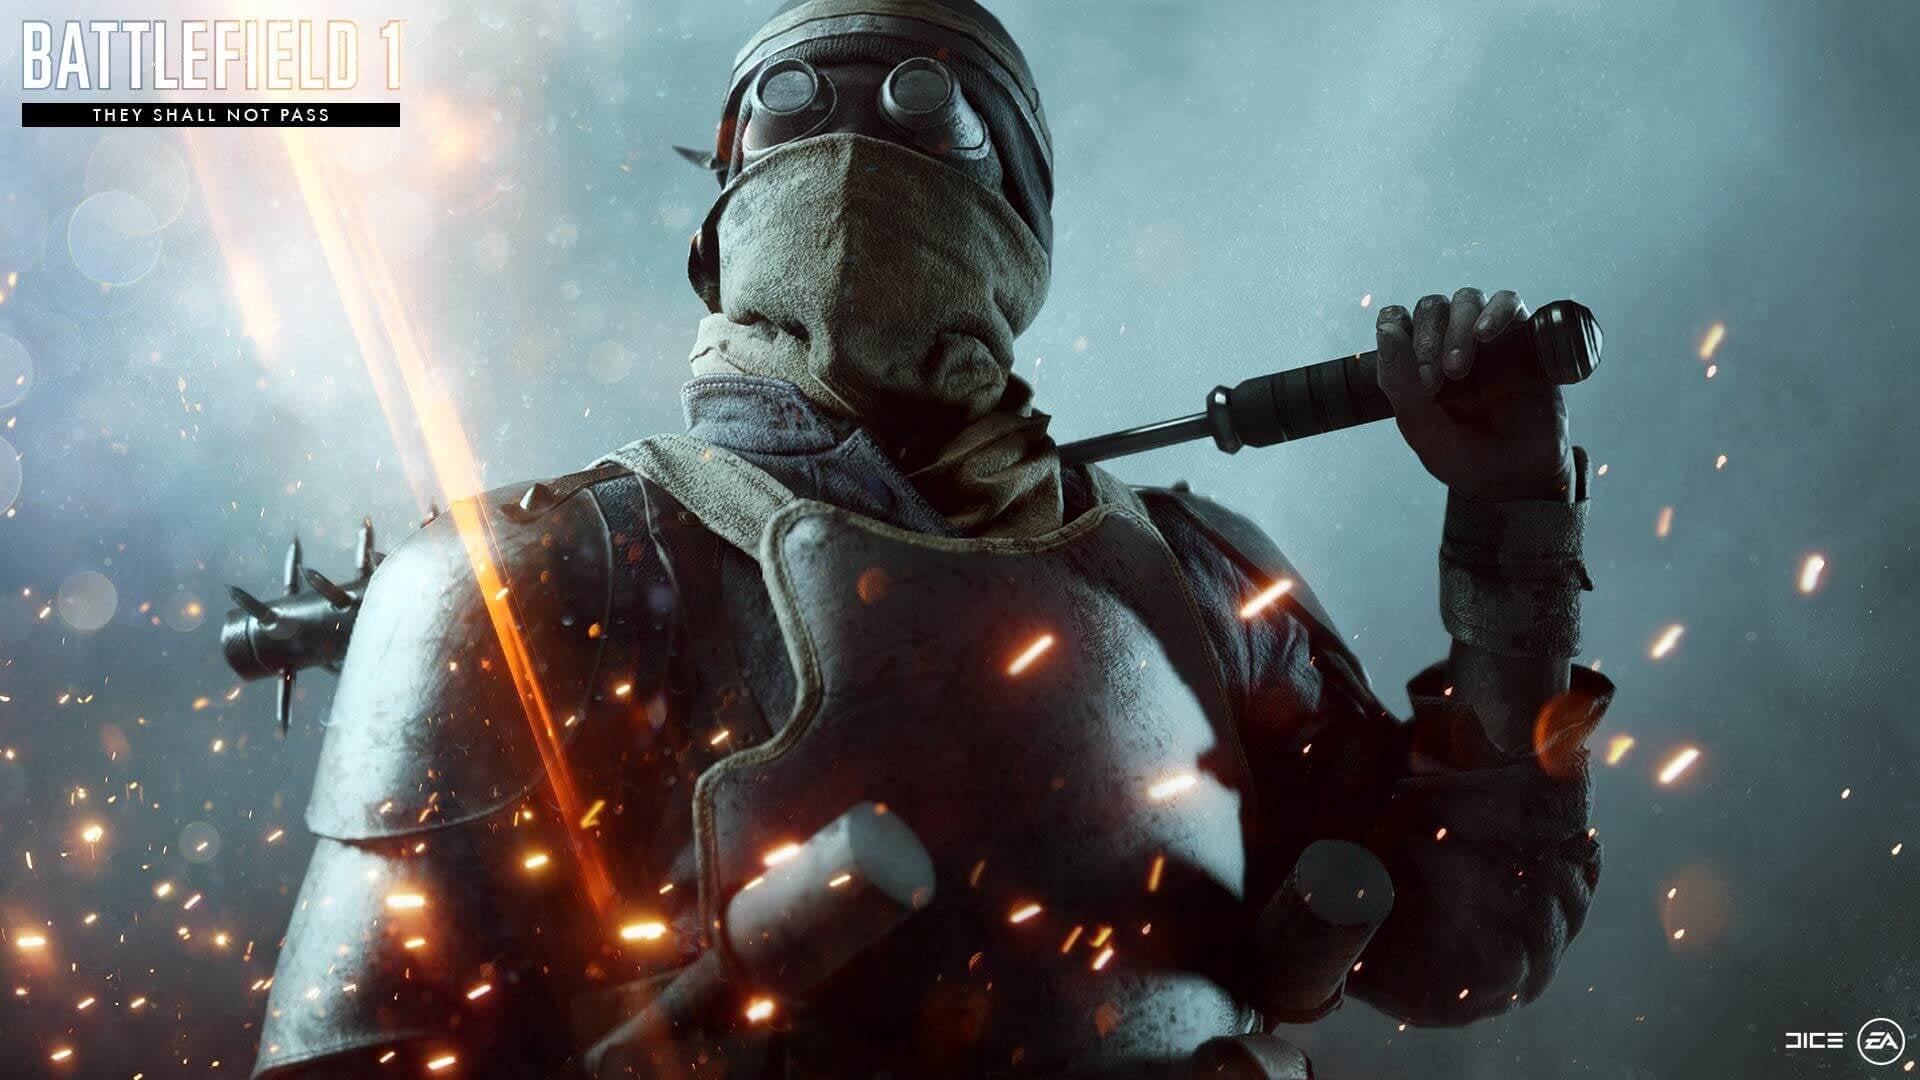 Battlefield 1 They Shall Not Pass DLC Free For Two Weeks